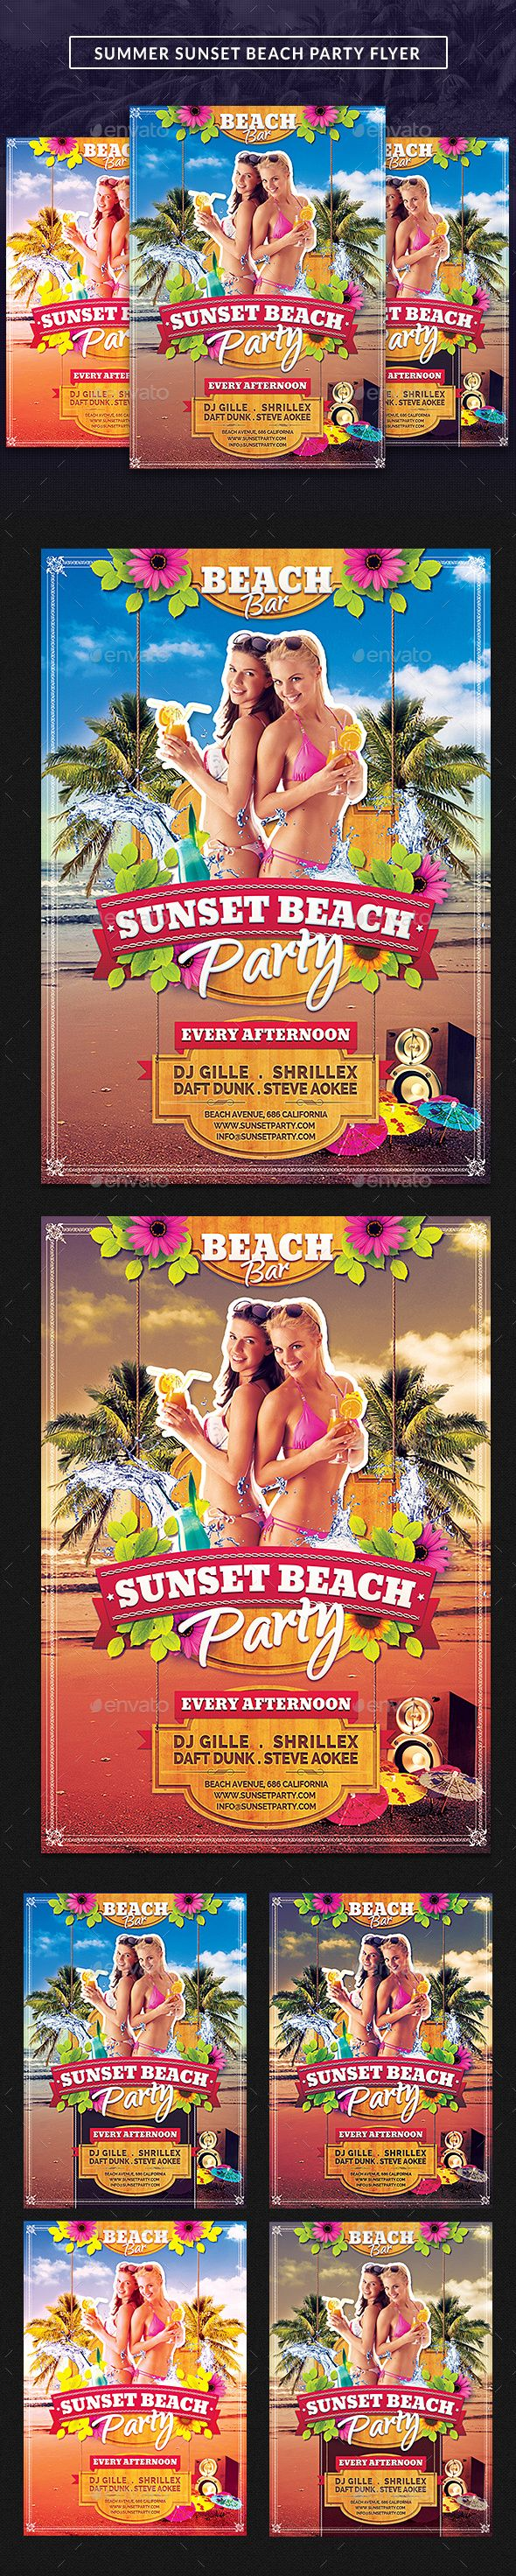 Summer Sunset Beach Party #Flyer - Clubs & Parties Events Download Here:   https://graphicriver.net/item/summer-sunset-beach-party-flyer/8340230?ref=suz_562geid